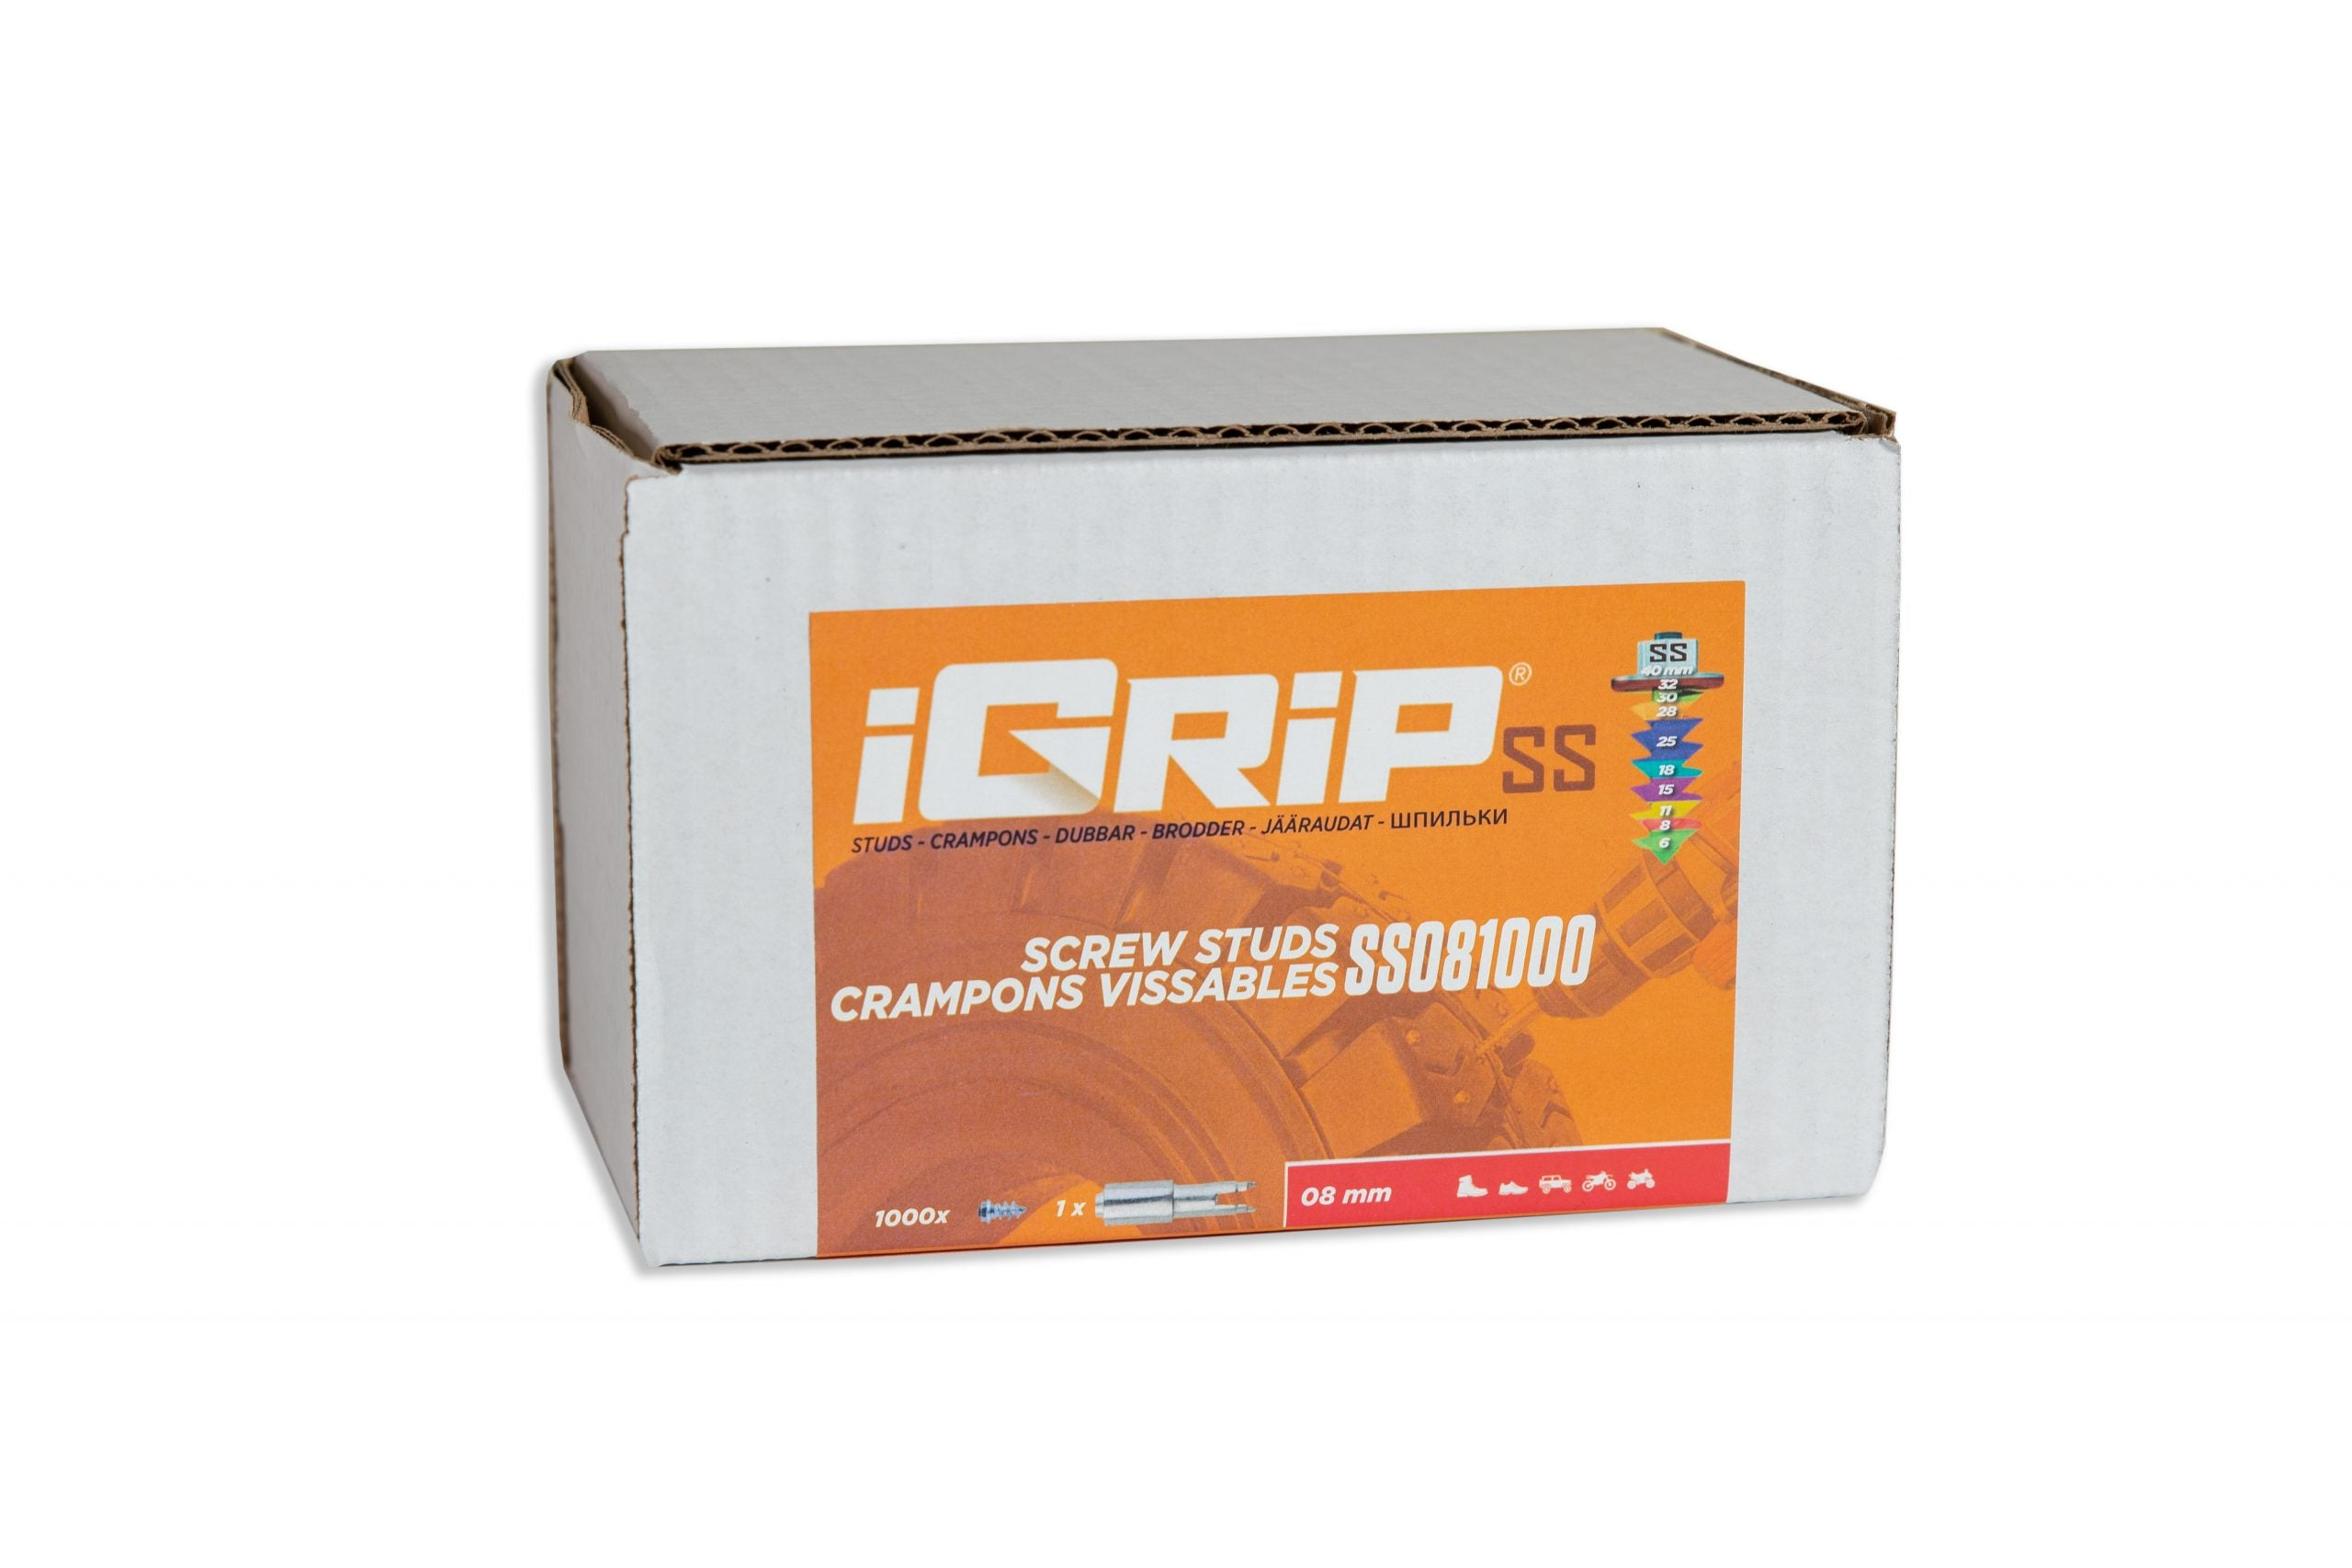 SS-08 iGrip Shouldered Tire Studs